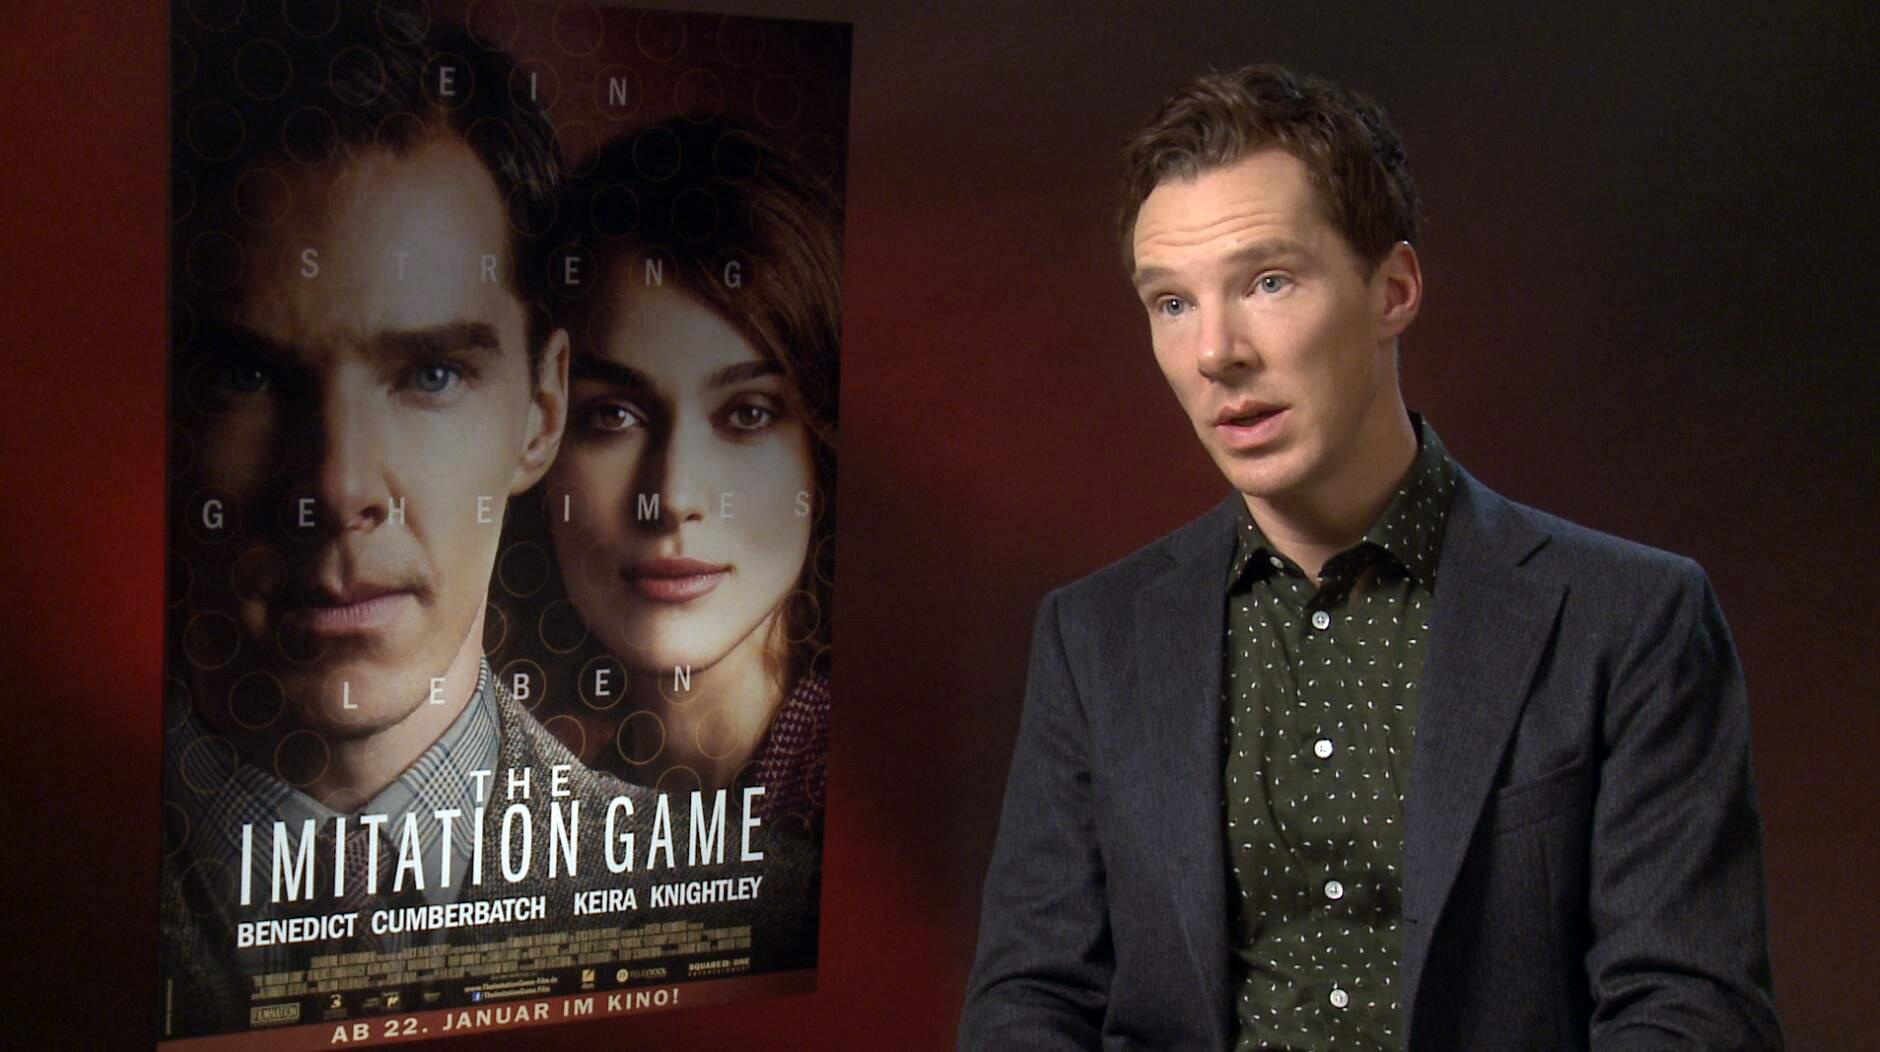 Bild zu Benedict Cumberbatch, Imitation Game